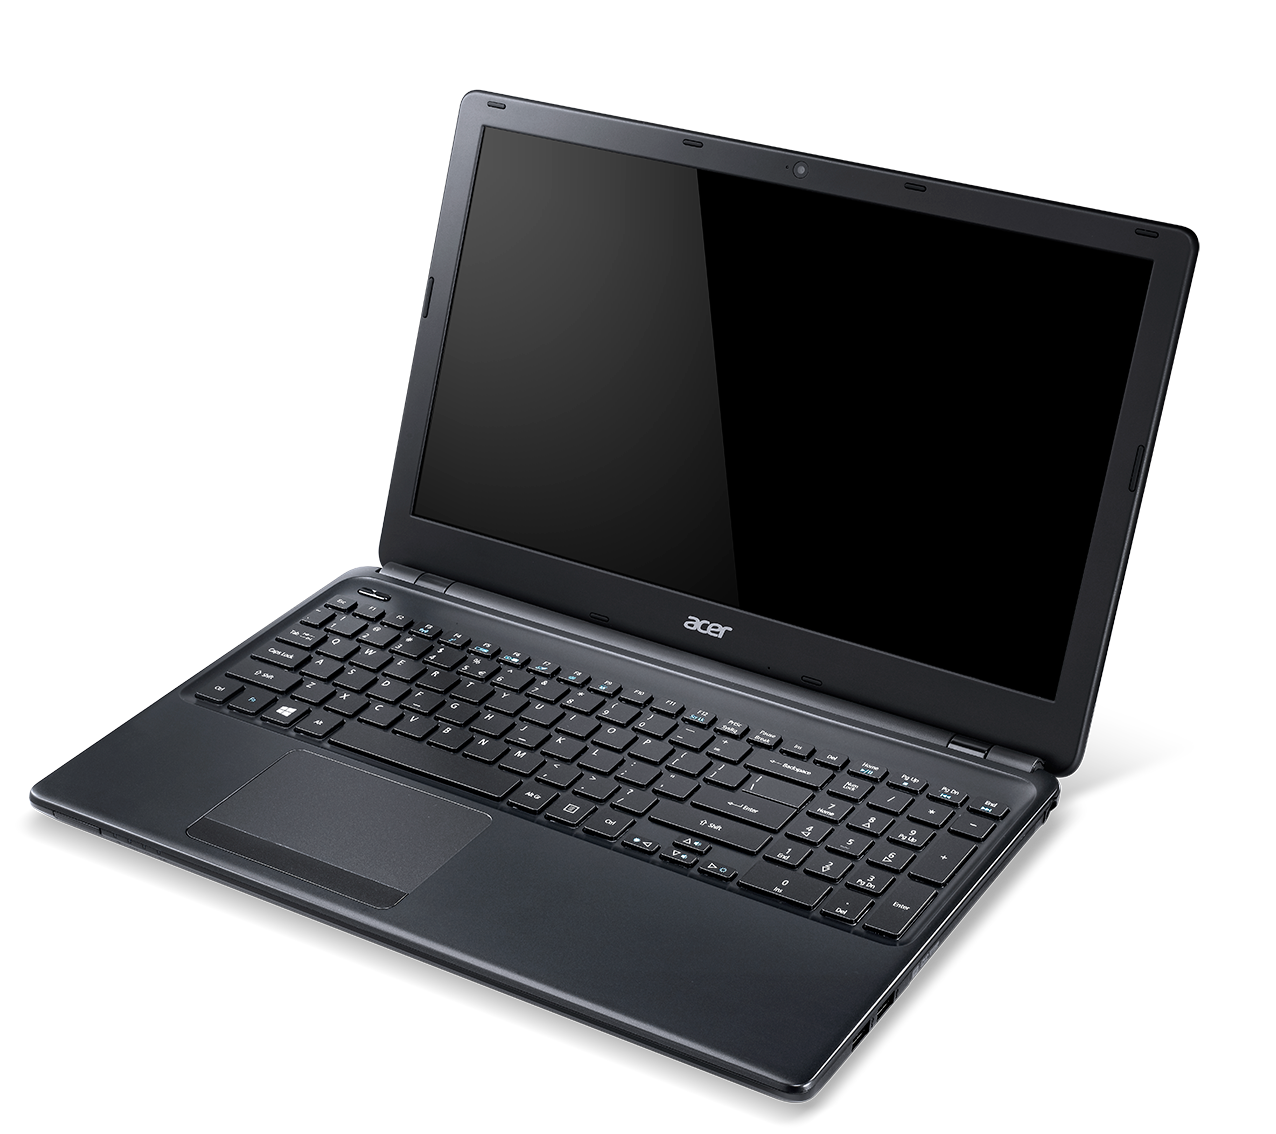 ACER NC-R7-572G-74508 DRIVERS FOR WINDOWS 7